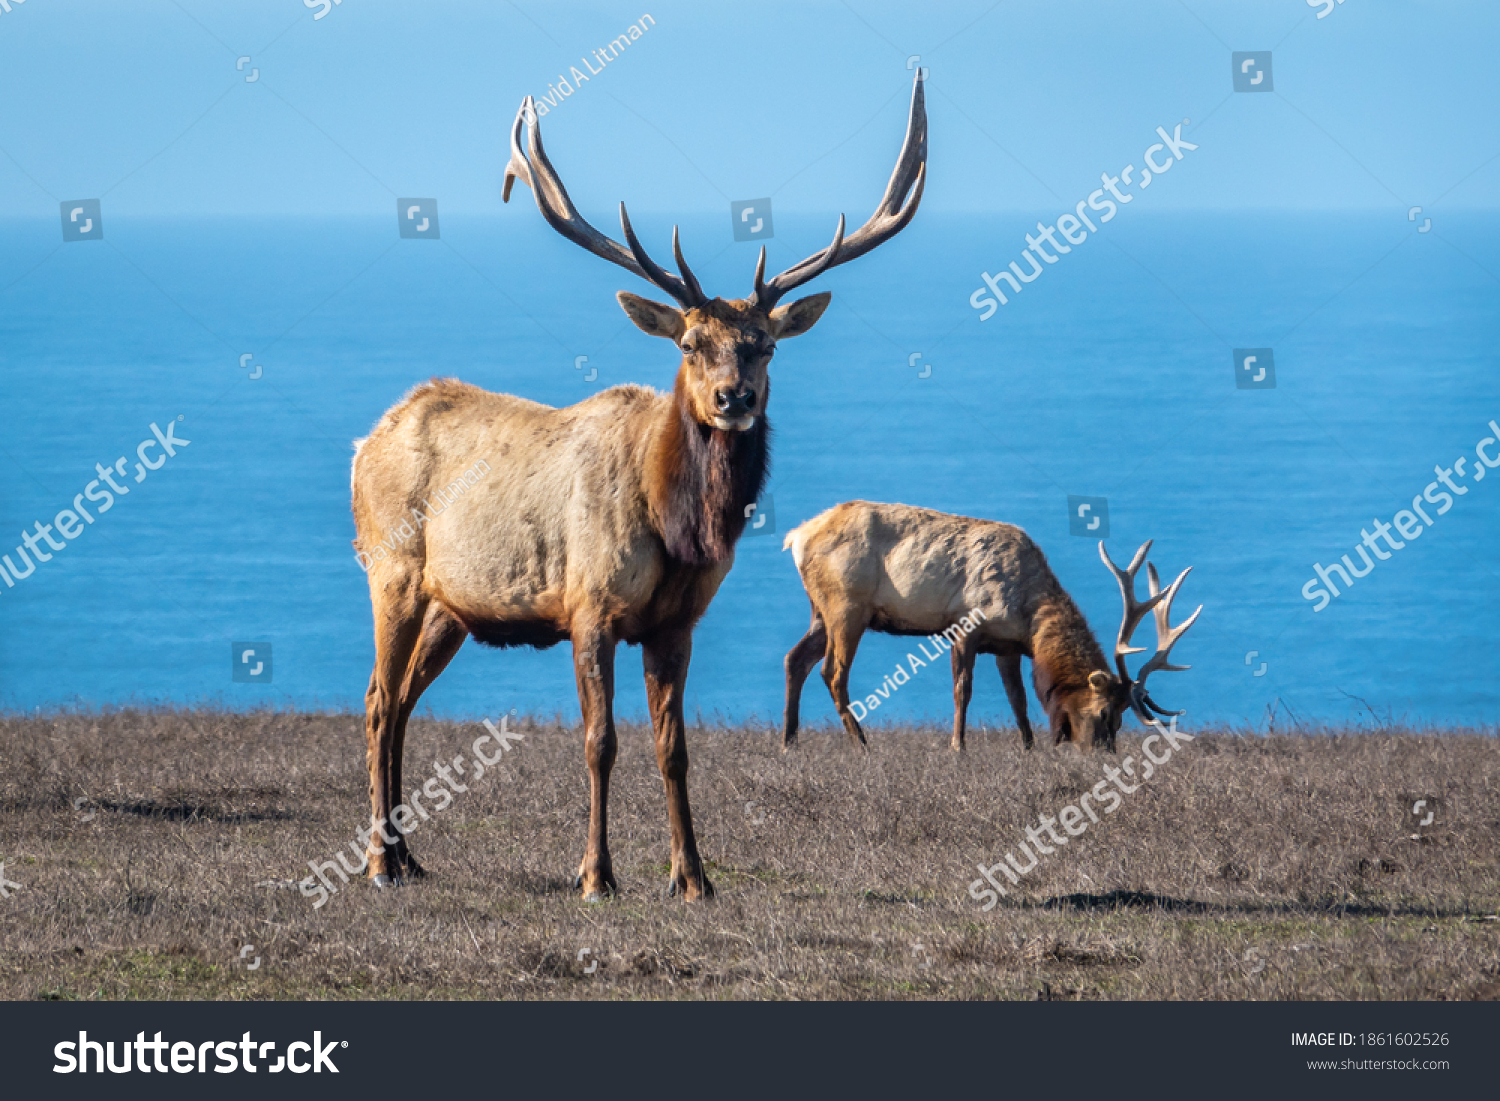 Two male Tule Elk (Cervus canadensis nannodes) bulls graze the grassy hillsides of Point Reyes National Seashore preserve, near Drake's Beach, in Marin County, California, with view of Pacific Ocean.